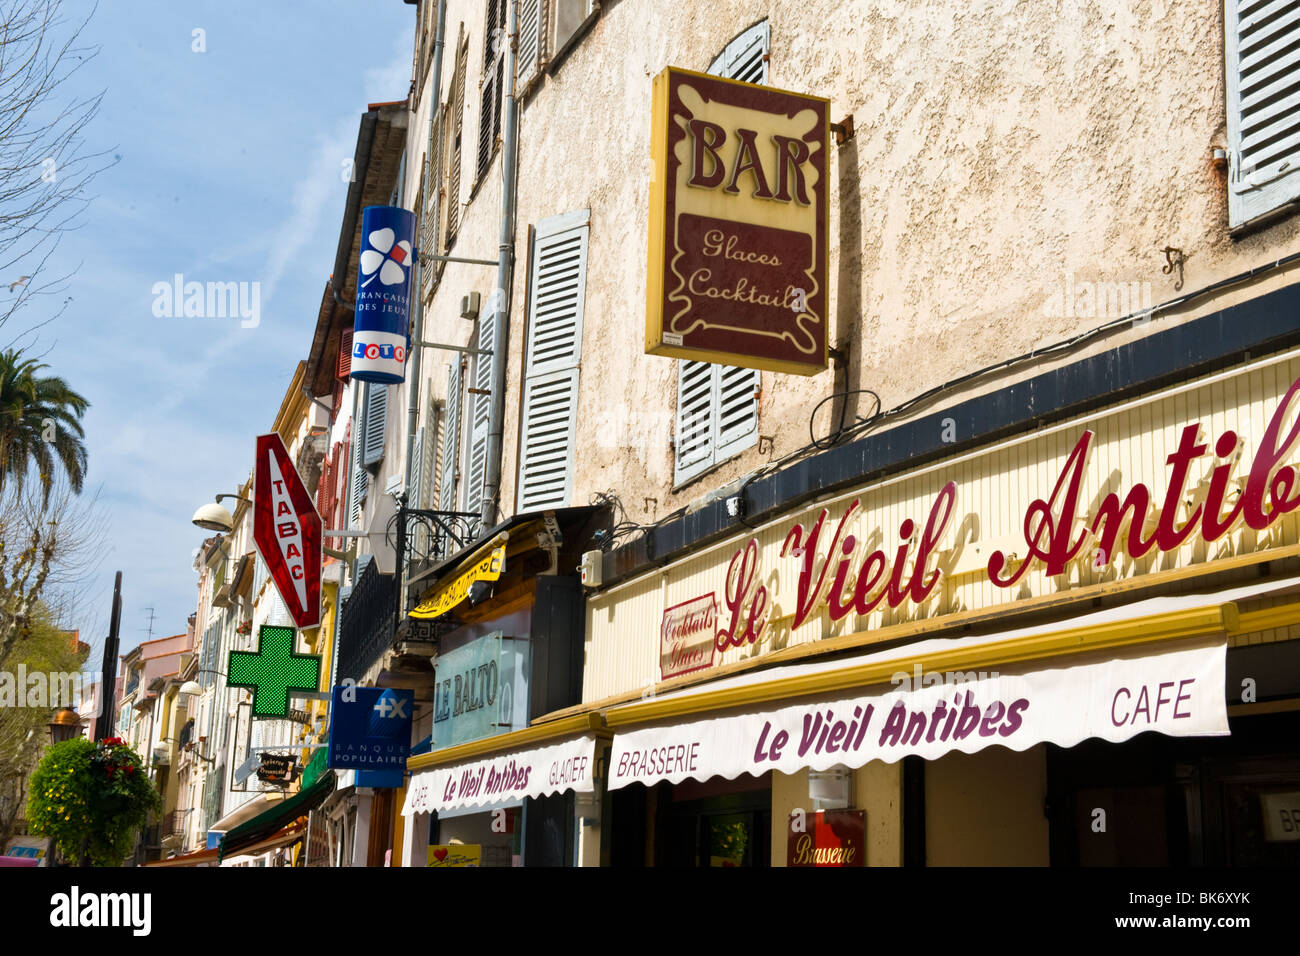 Antibes , typical shop or store arcade with Tabac , loto ...